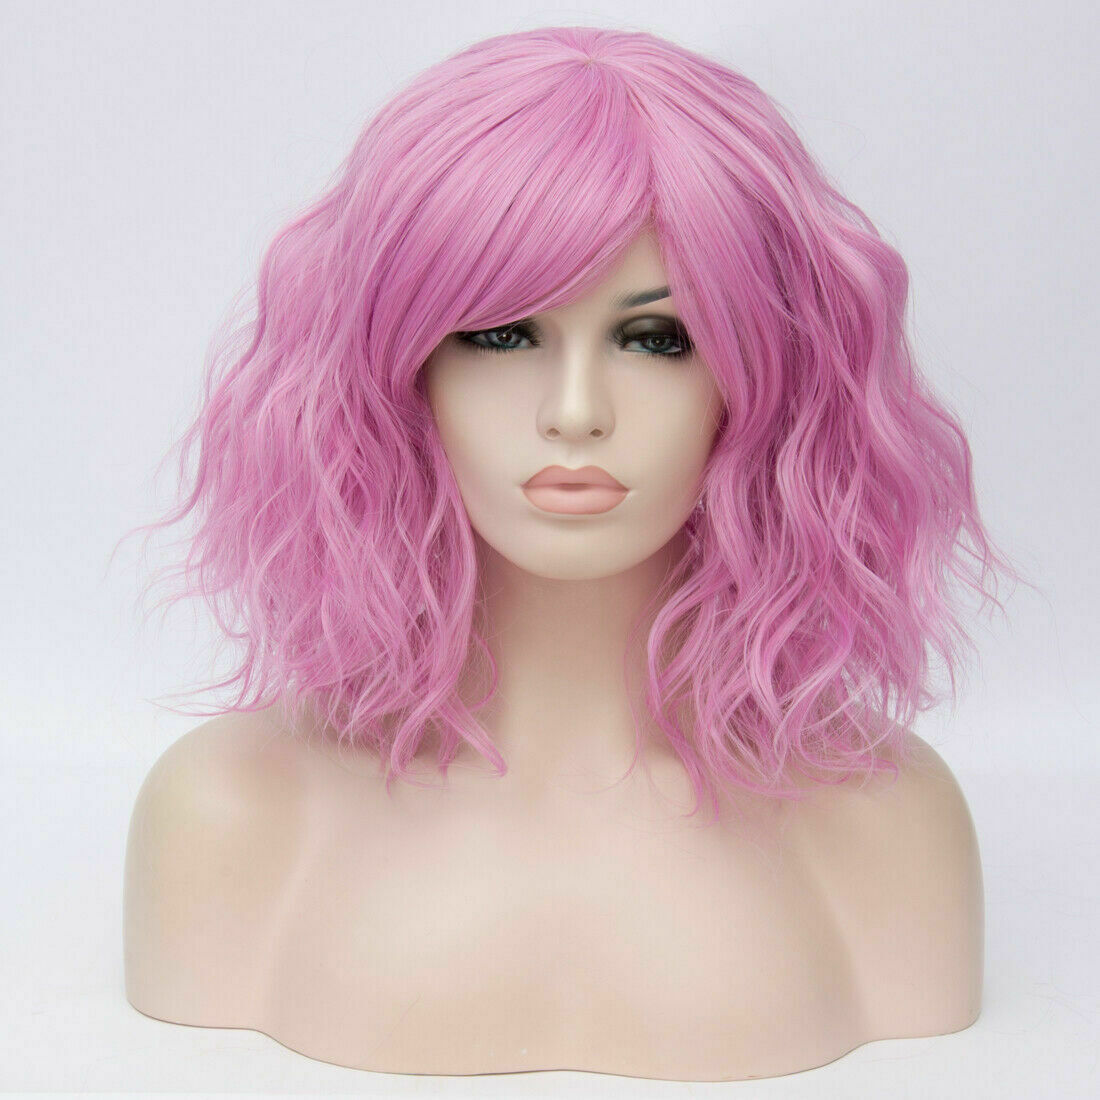 Lolita-Women-039-s-Short-Curly-Anime-Synthetic-Hair-Heat-Resistant-Cosplay-Party-Wig miniature 70